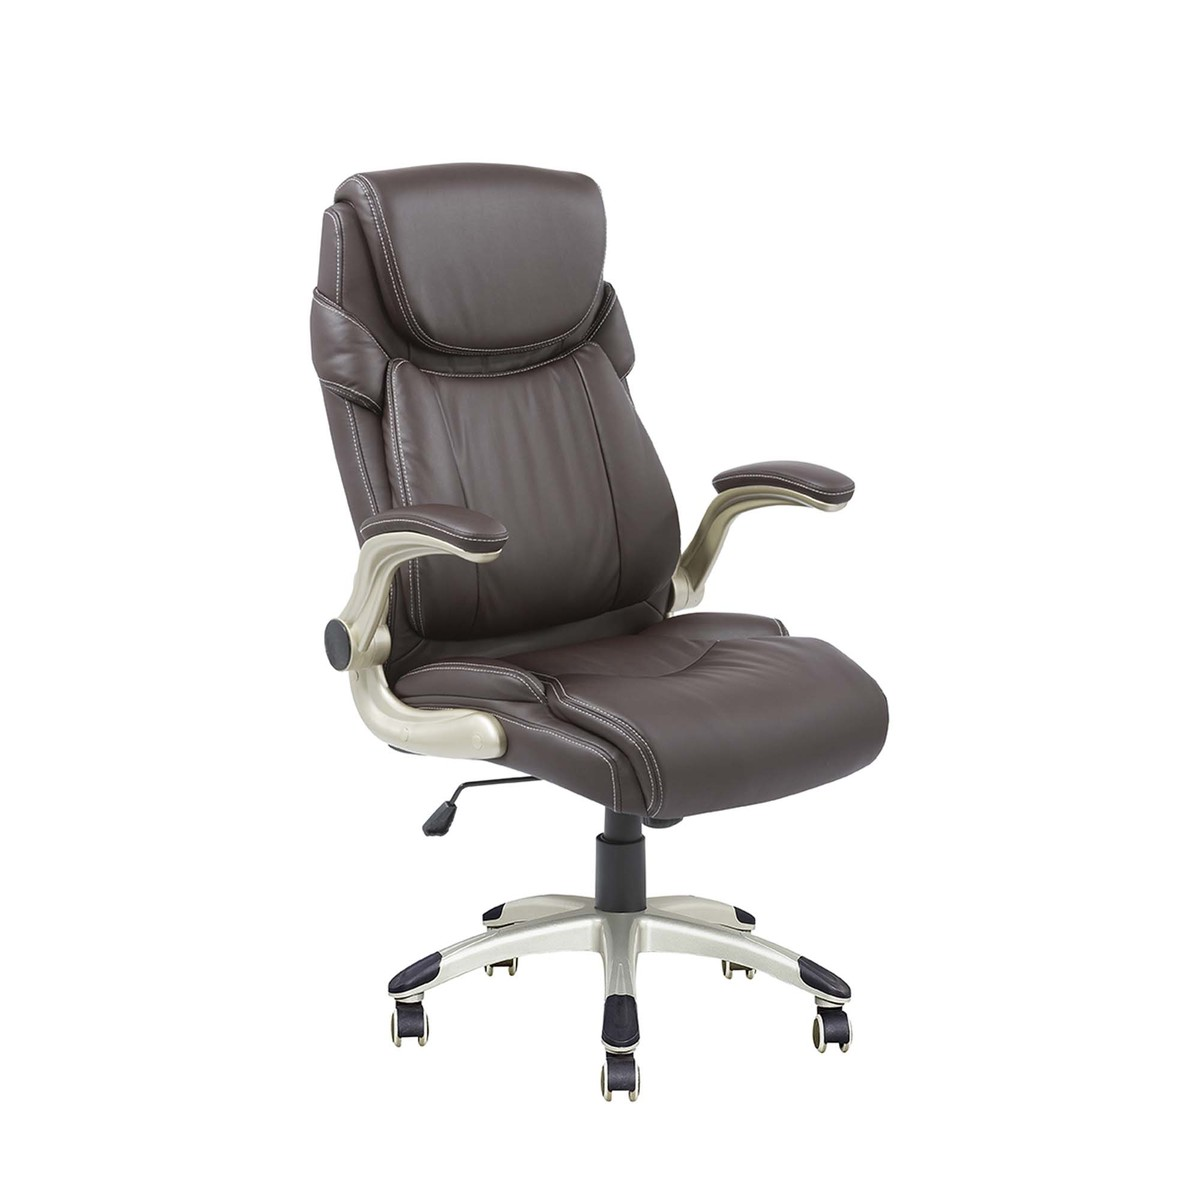 Home Style Office Chair SA9 Brown